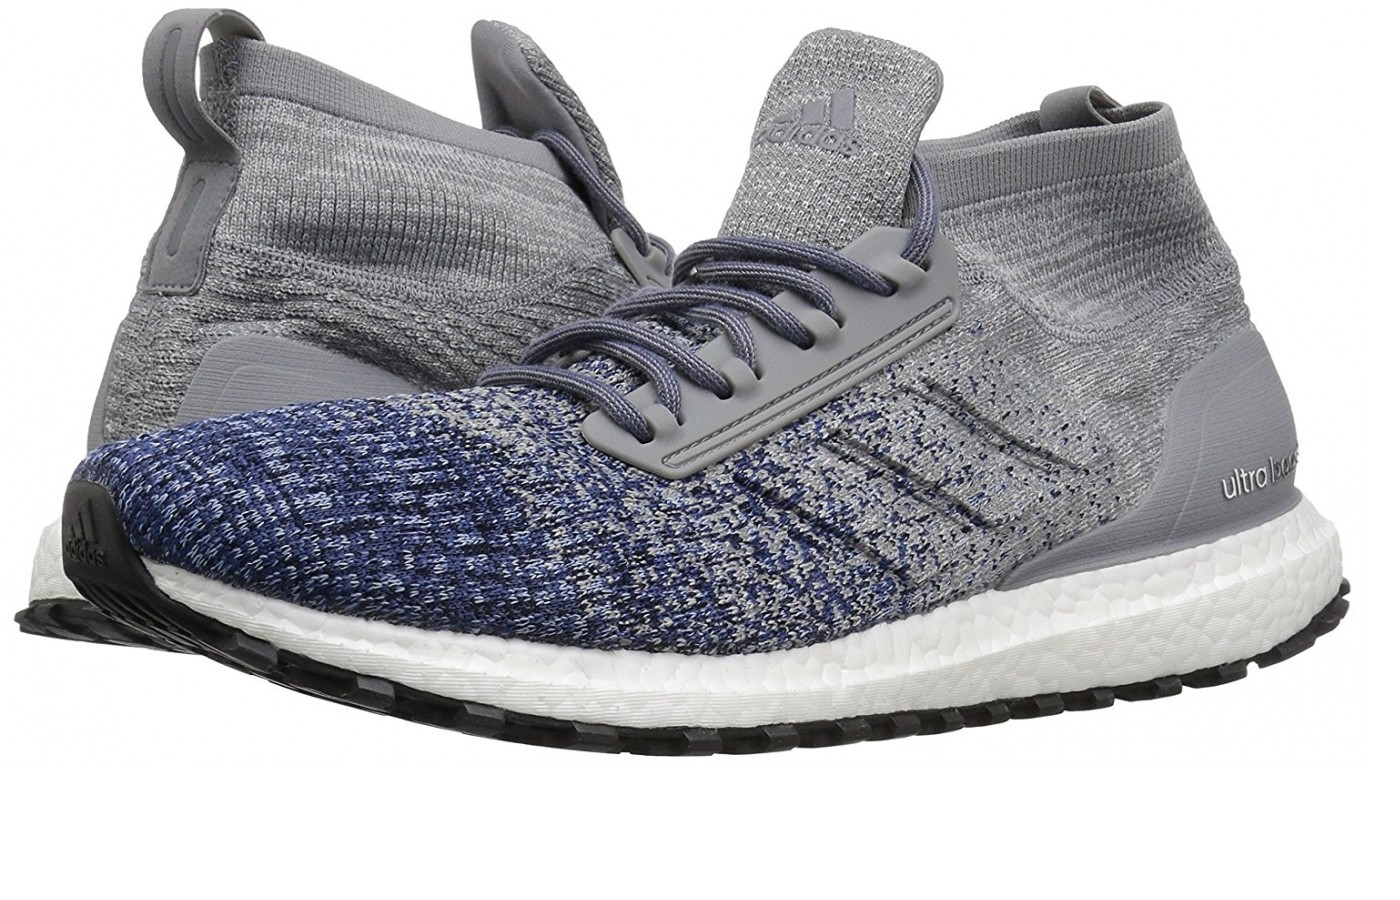 A pair of the Adidas Ultraboost All Terrains